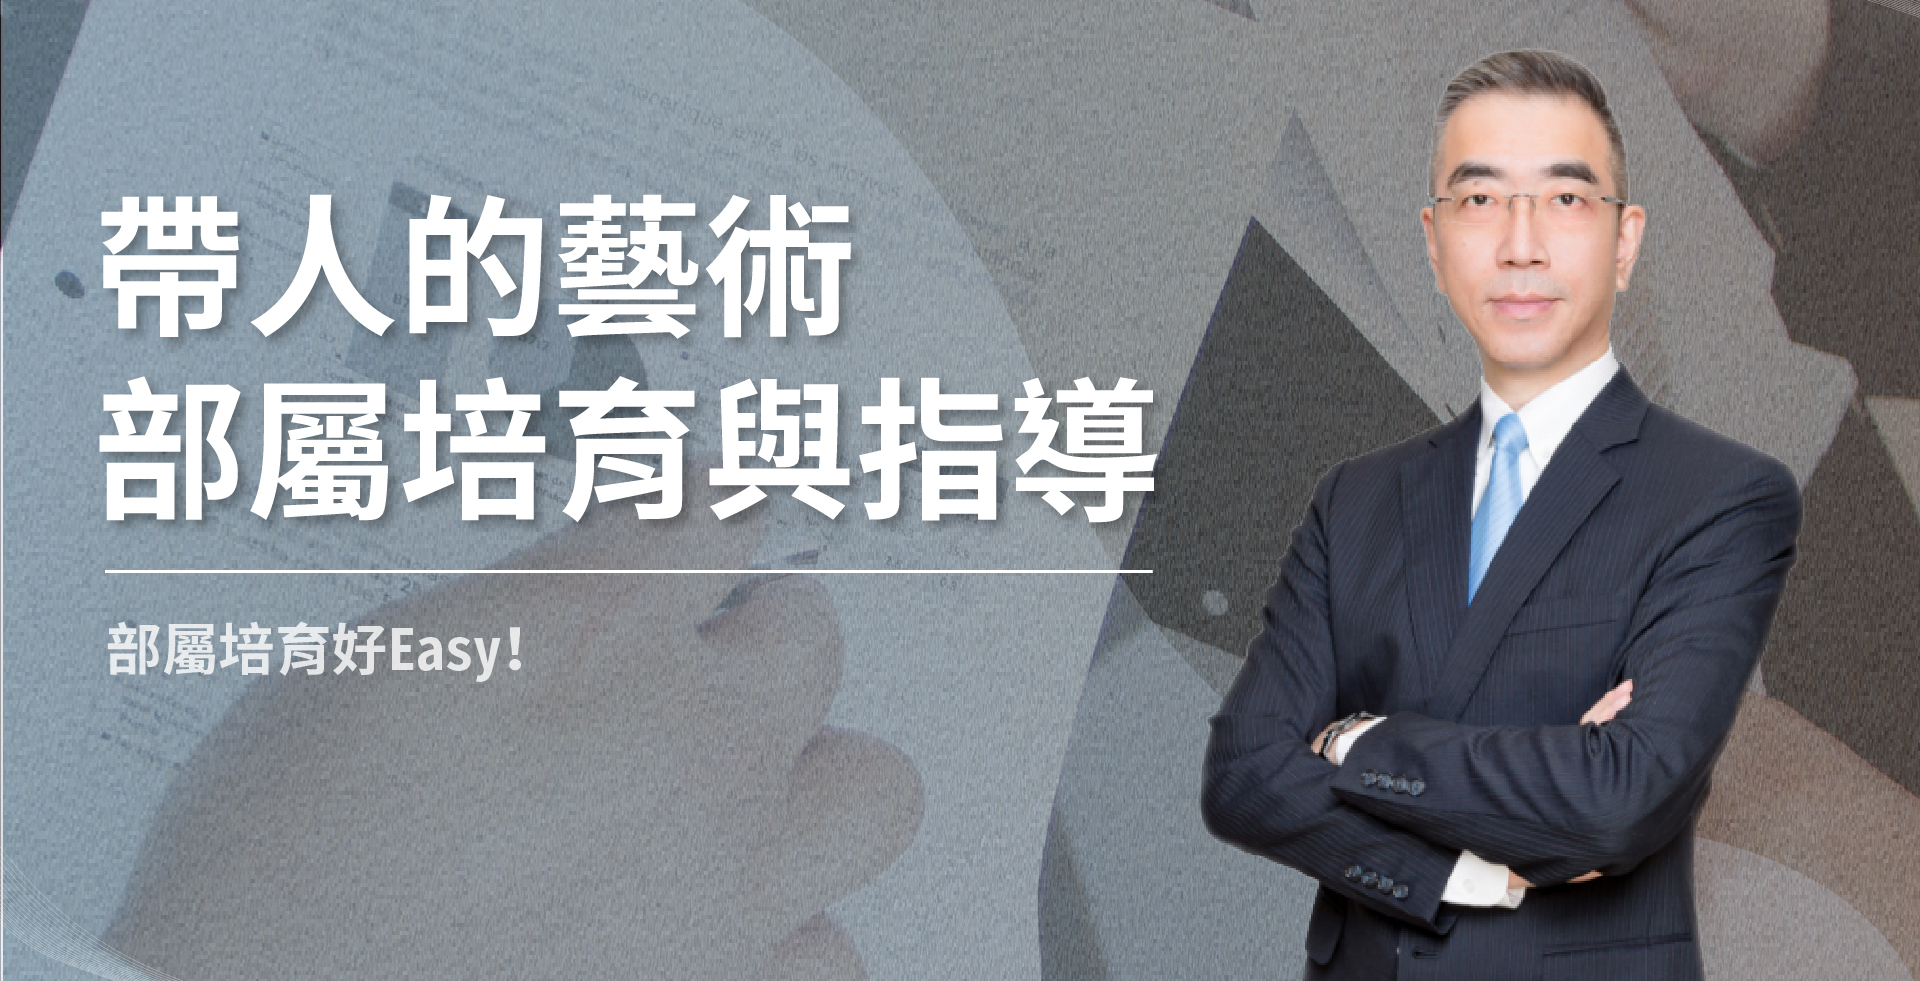 Read more about the article 帶人的藝術:部屬培育與指導